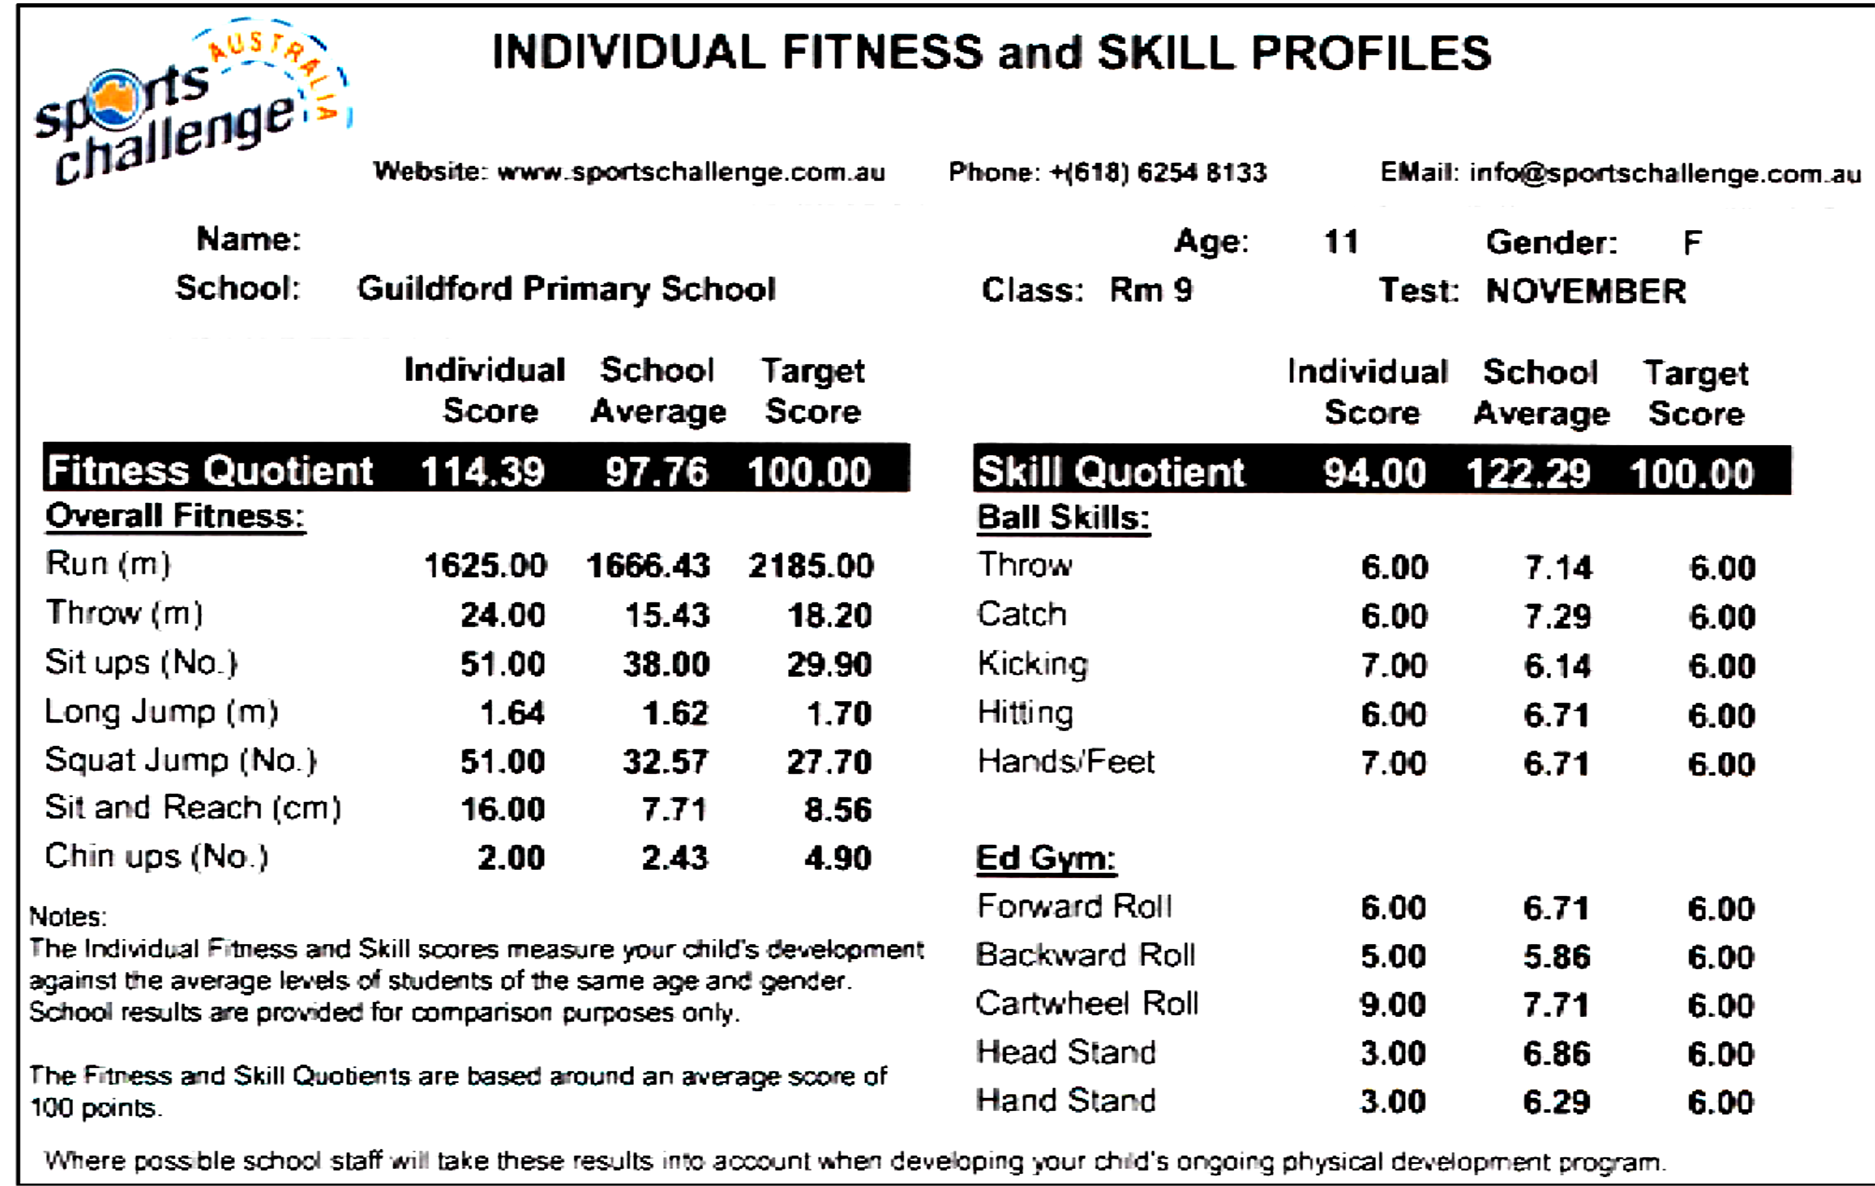 Individual Report Example For Test Components And Fitness And Skill Quotients Showing The Comparison With The School Average And Target Mean Scores